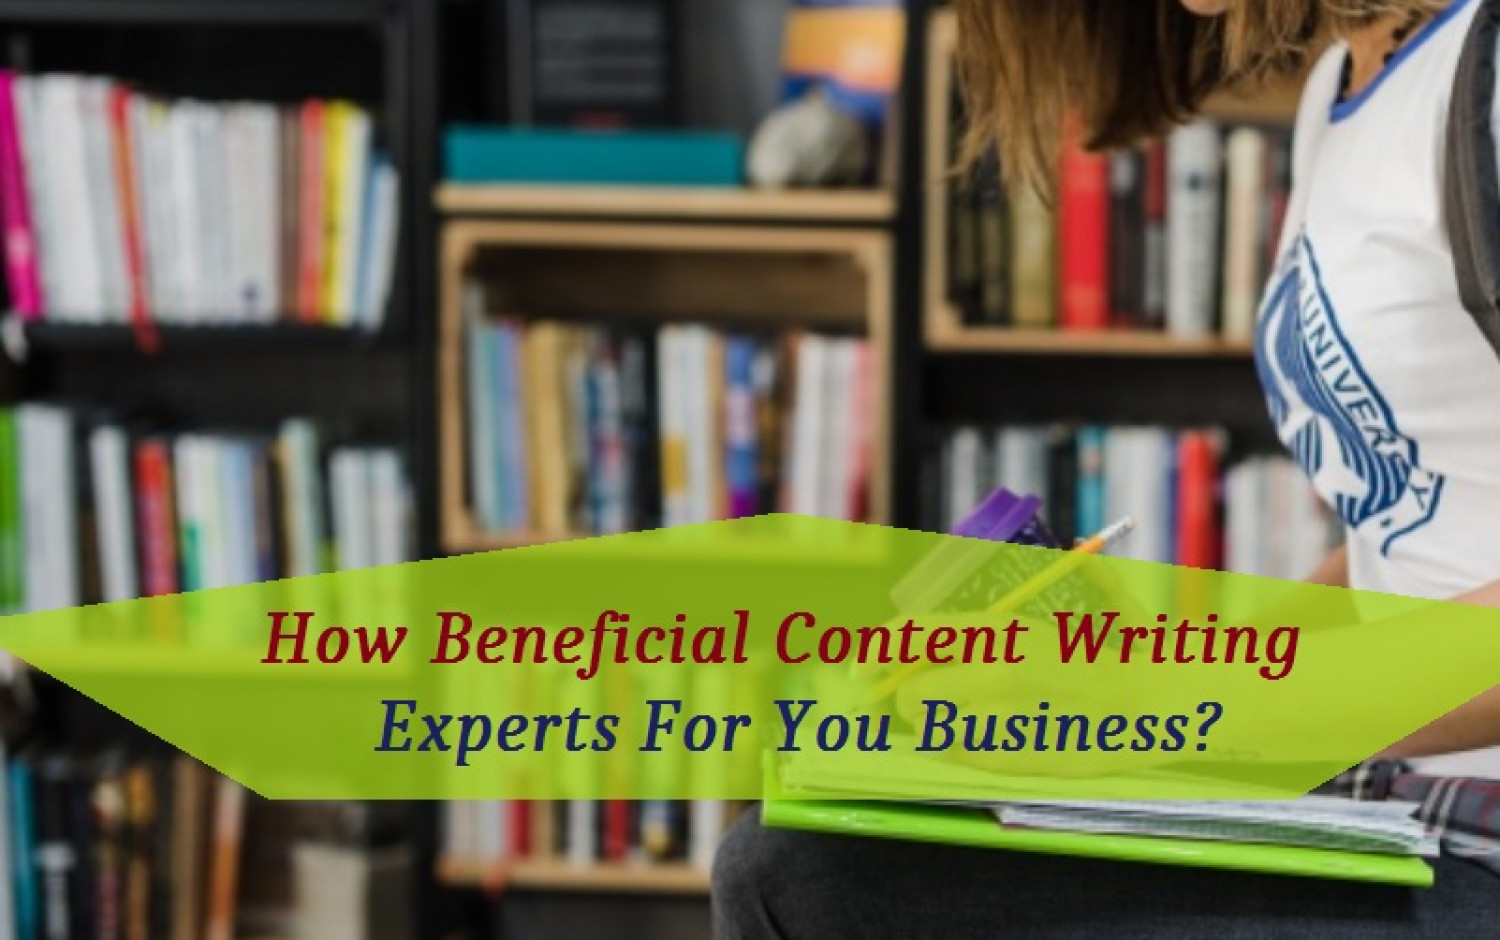 How Beneficial Content Writing Experts For You Business?  Infographic